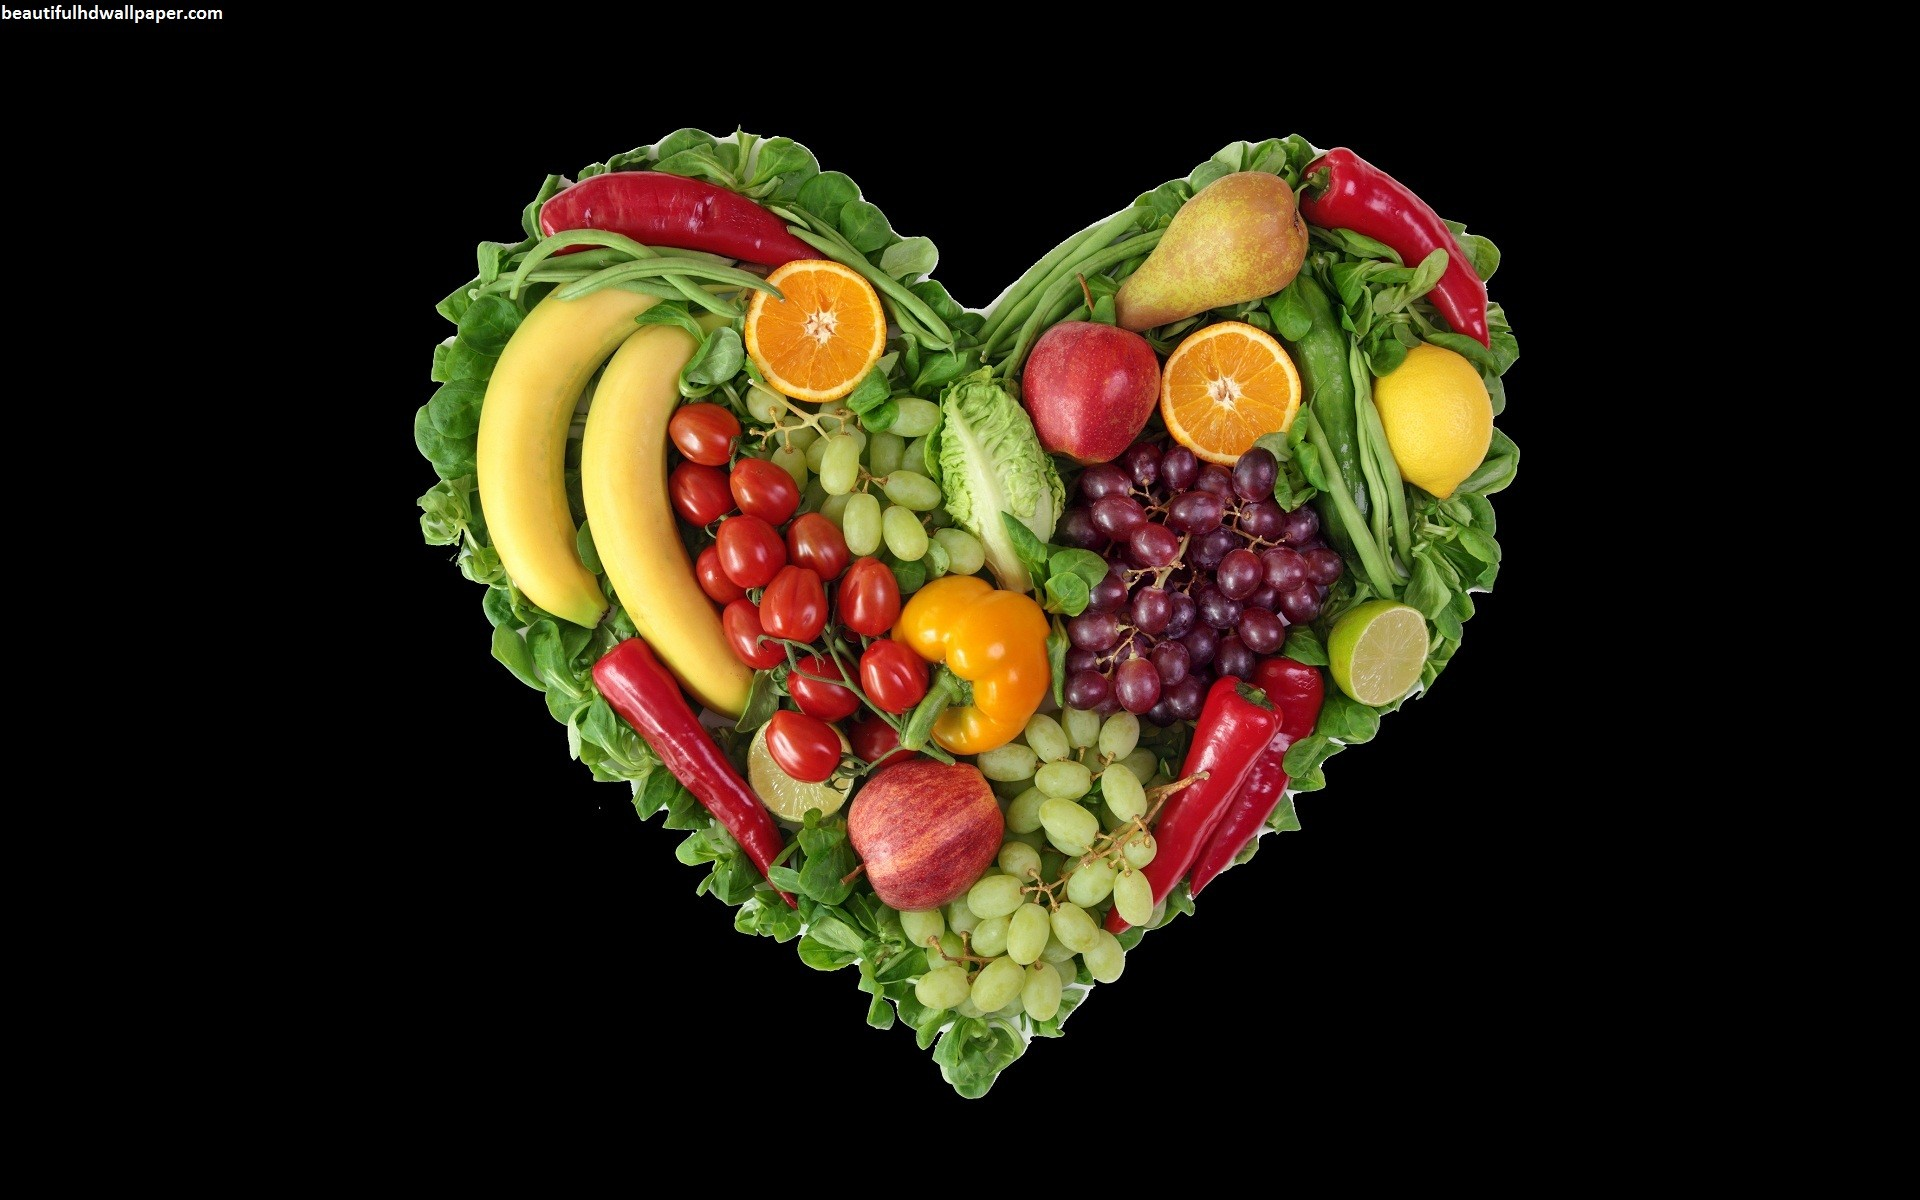 Res: 1920x1200, Image: Fruit & Vegetable Heart wallpapers and stock photos. Â«